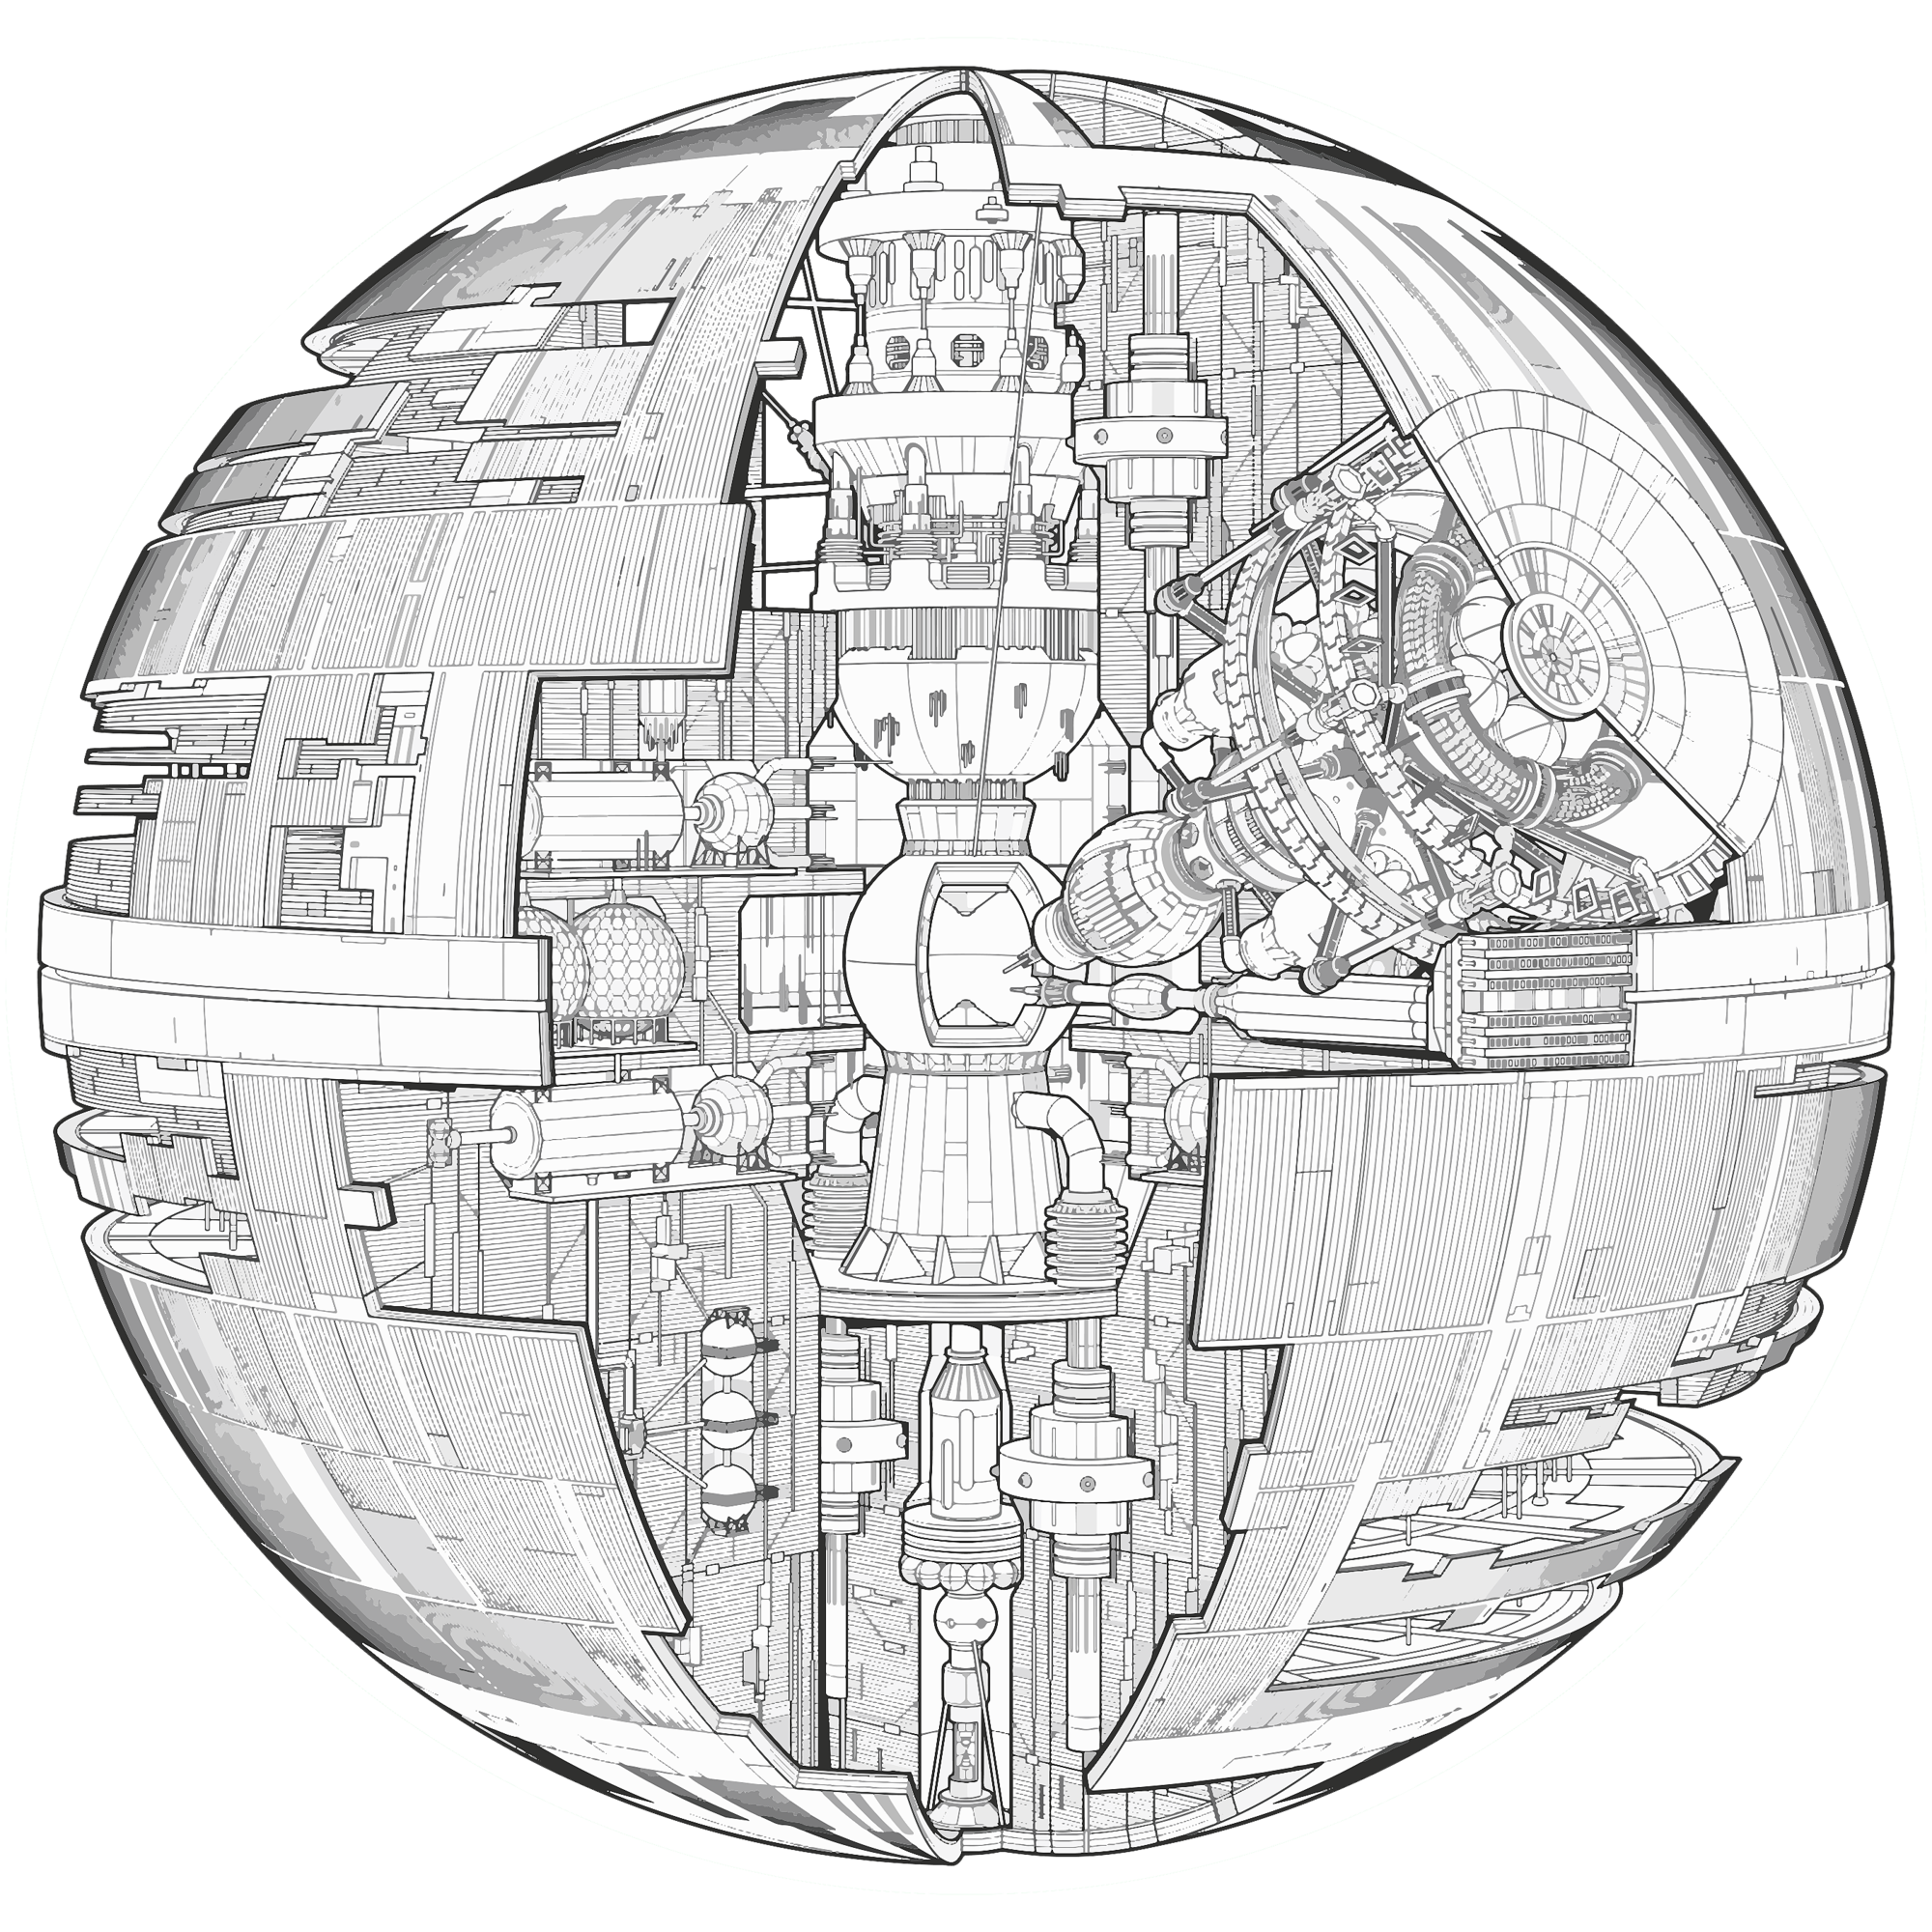 Death star clipart black and white svg royalty free download Death Star Drawing at GetDrawings.com | Free for personal use Death ... svg royalty free download